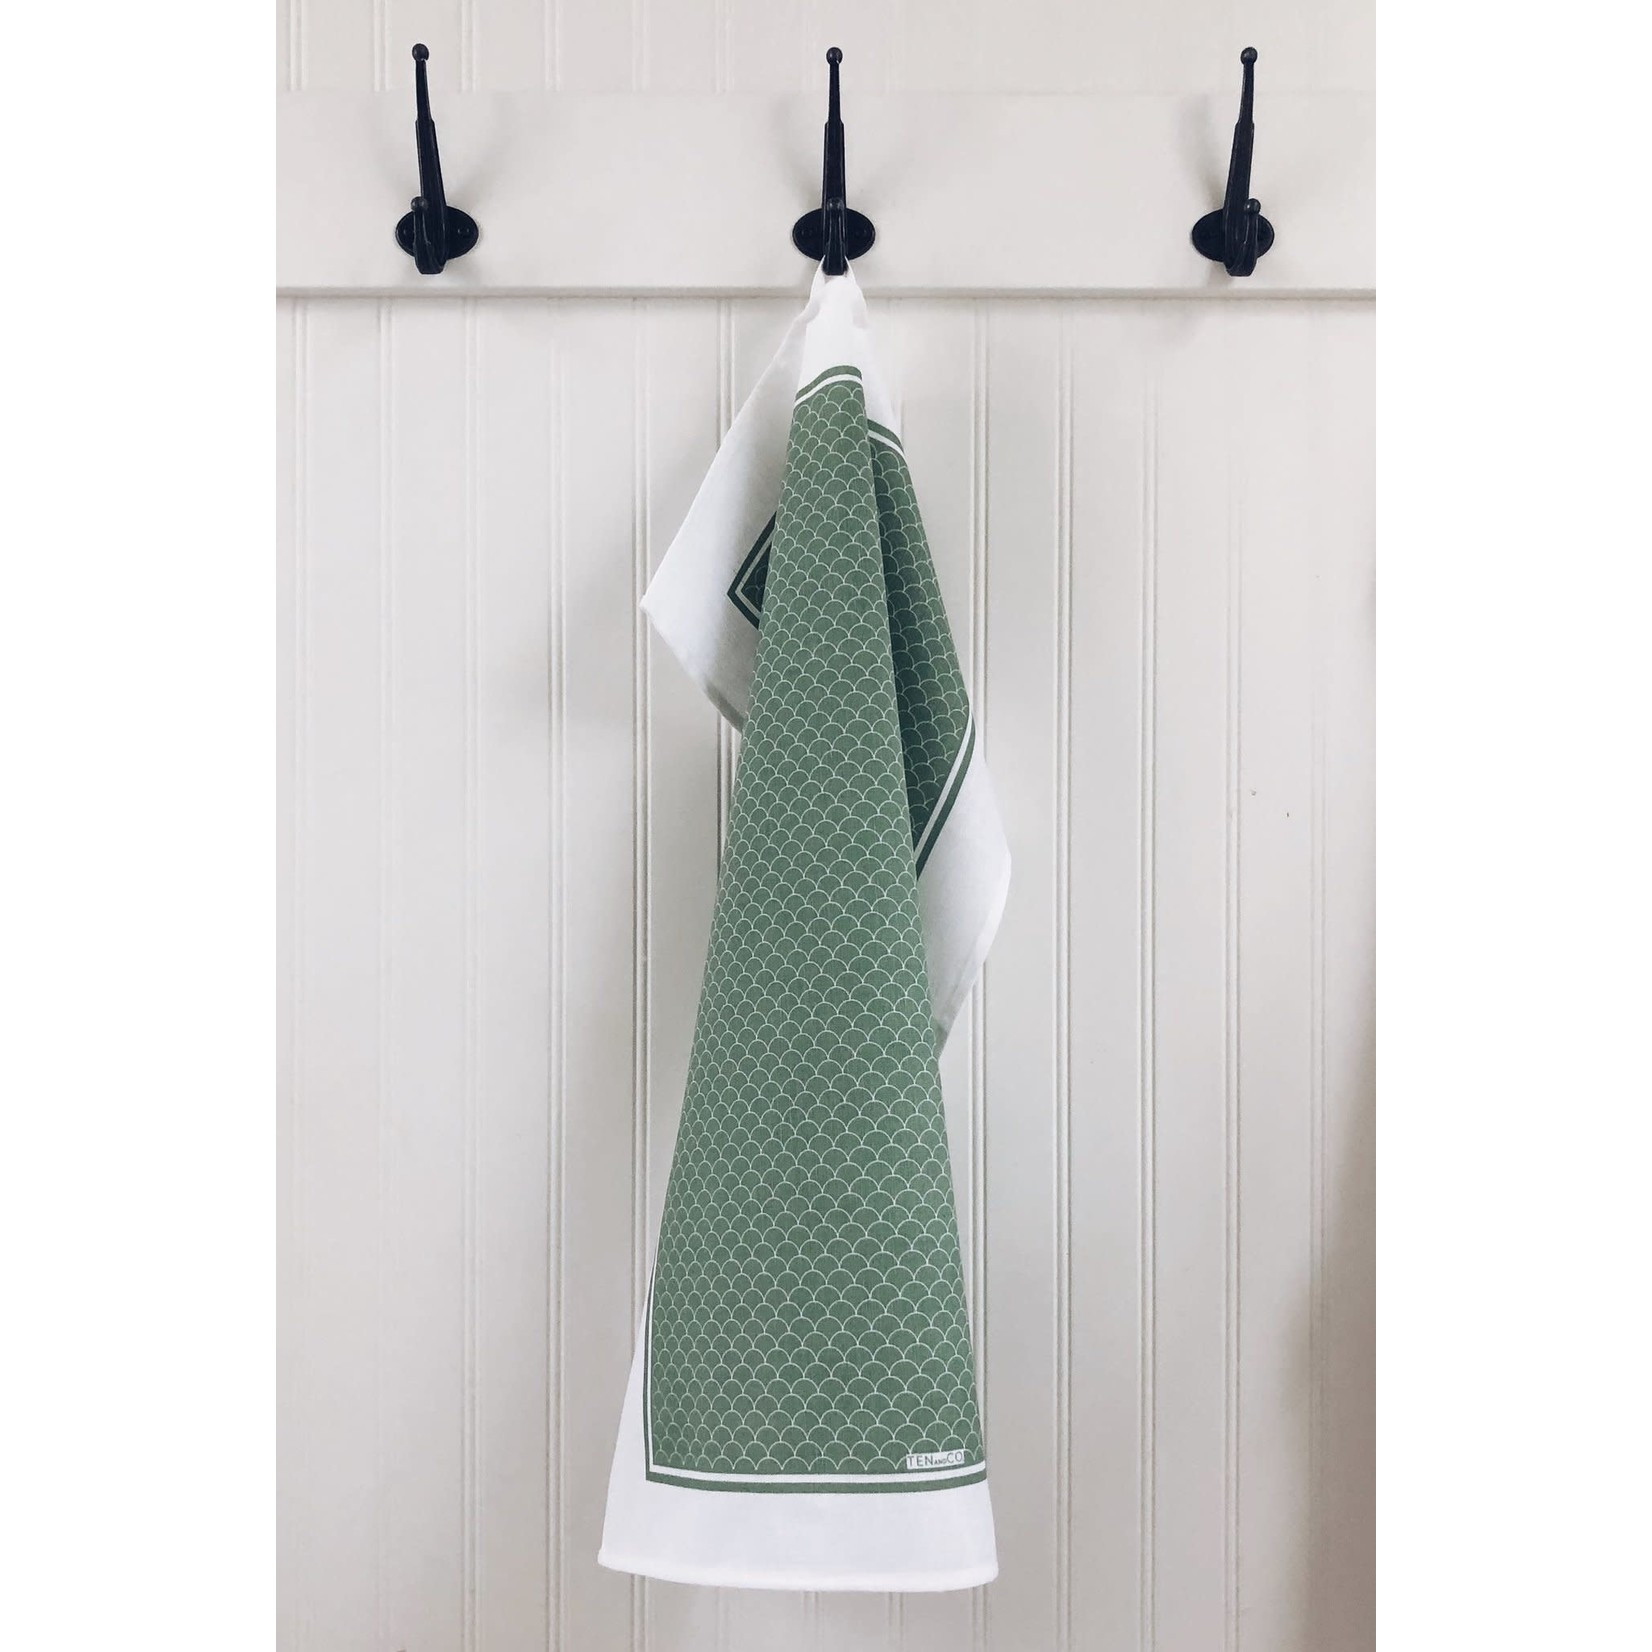 TEN AND CO. TEA TOWEL - SCALLOP SAGE